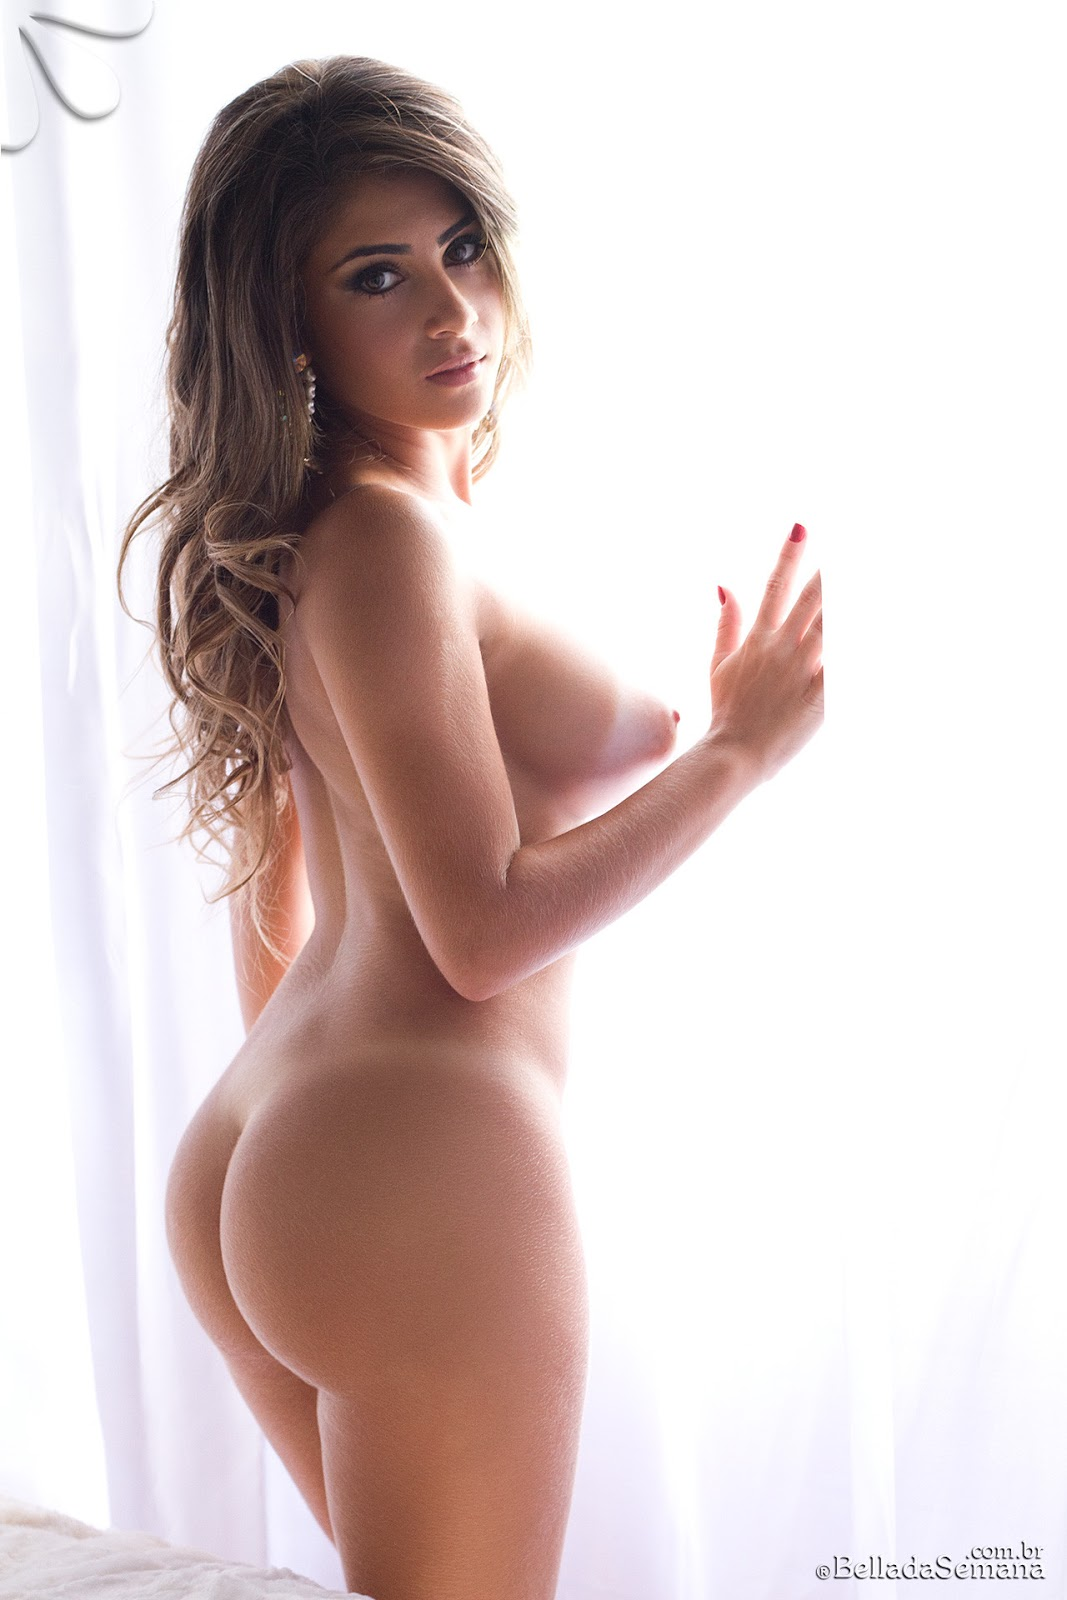 Sabah chinese girls nude are mistaken